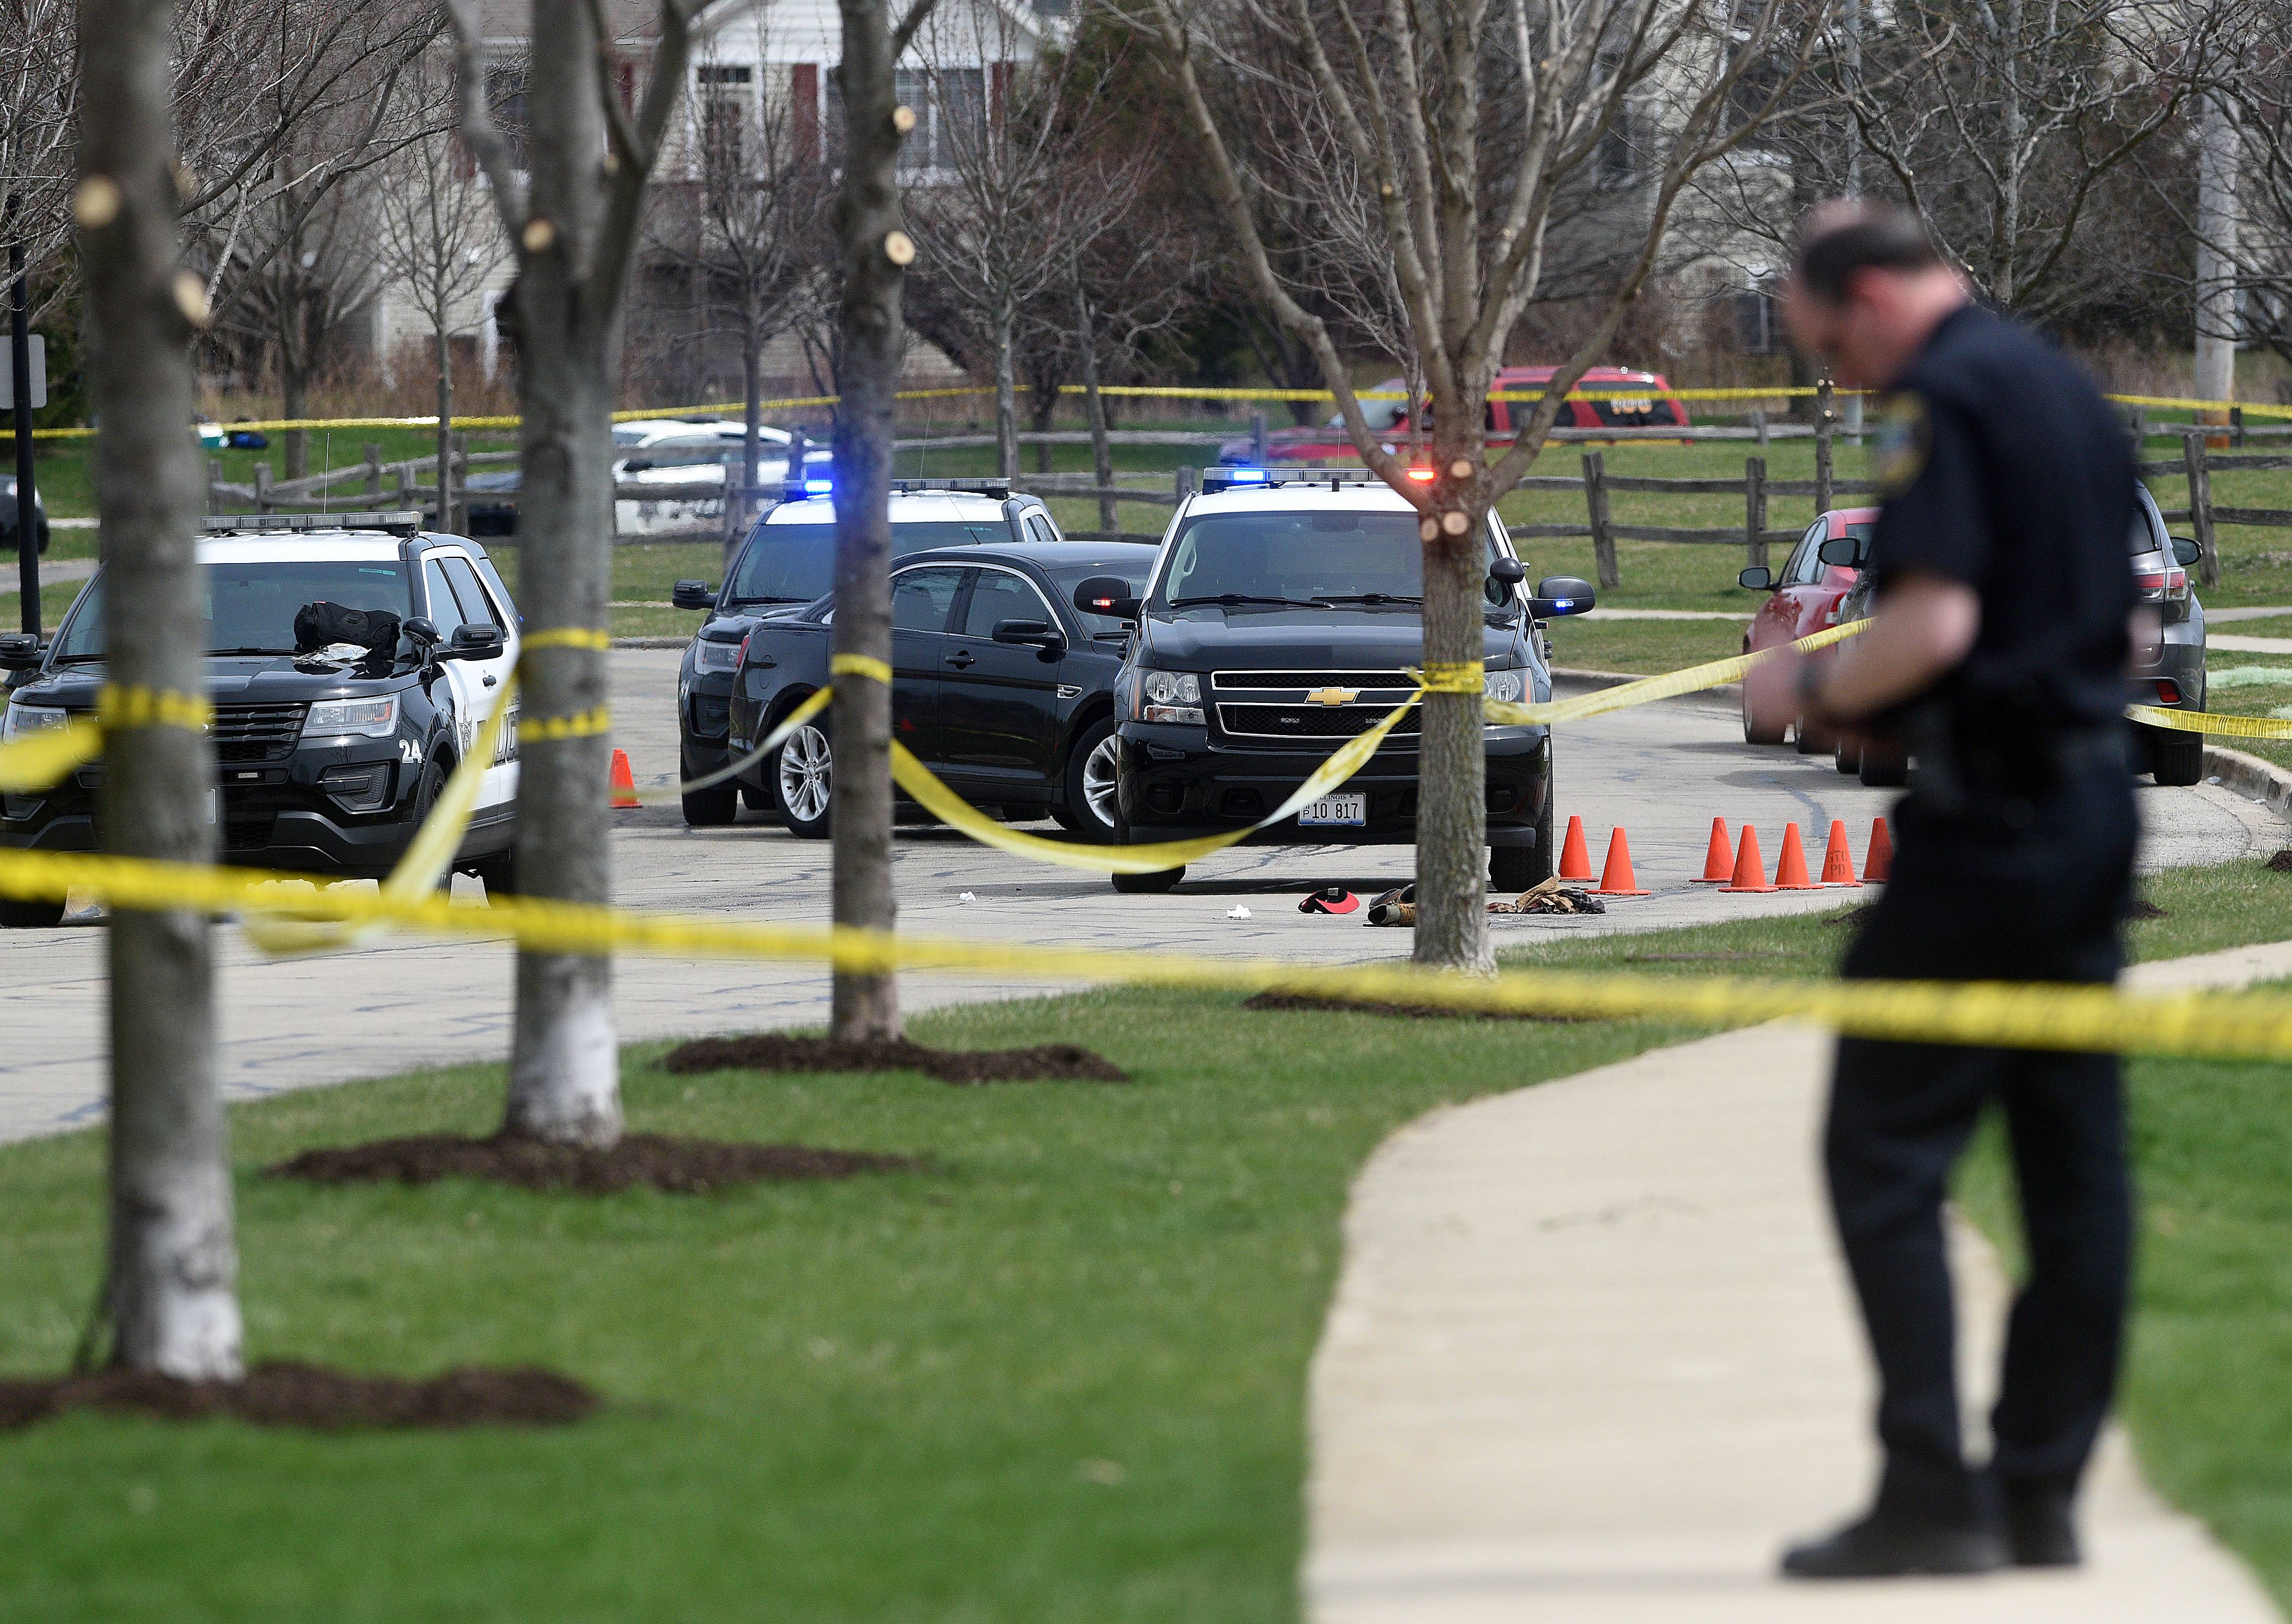 A man armed with a handgun was shot by St. Charles police Thursday near Peck Road and Voltaire Lane, officials said.